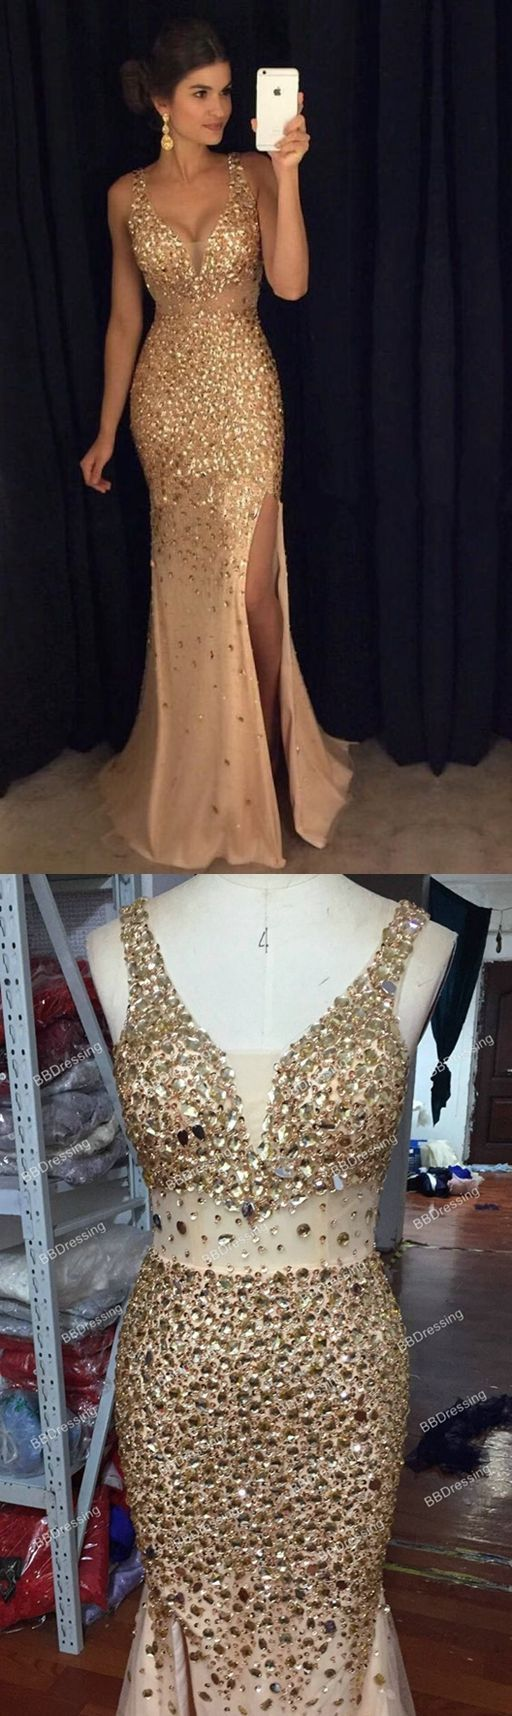 Real Photos ! 2017 Sexy Long Crystal Beaded Prom Dress With Slit Mermaid Prom Dresses Evening Gown Formal Wear: - affordable prom dresses, ladies black and white dresses, burgundy dresses for juniors *sponsored https://www.pinterest.com/dresses_dress/ https://www.pinterest.com/explore/dresses/ https://www.pinterest.com/dresses_dress/quinceanera-dresses/ https://www.thereformation.com/dresses